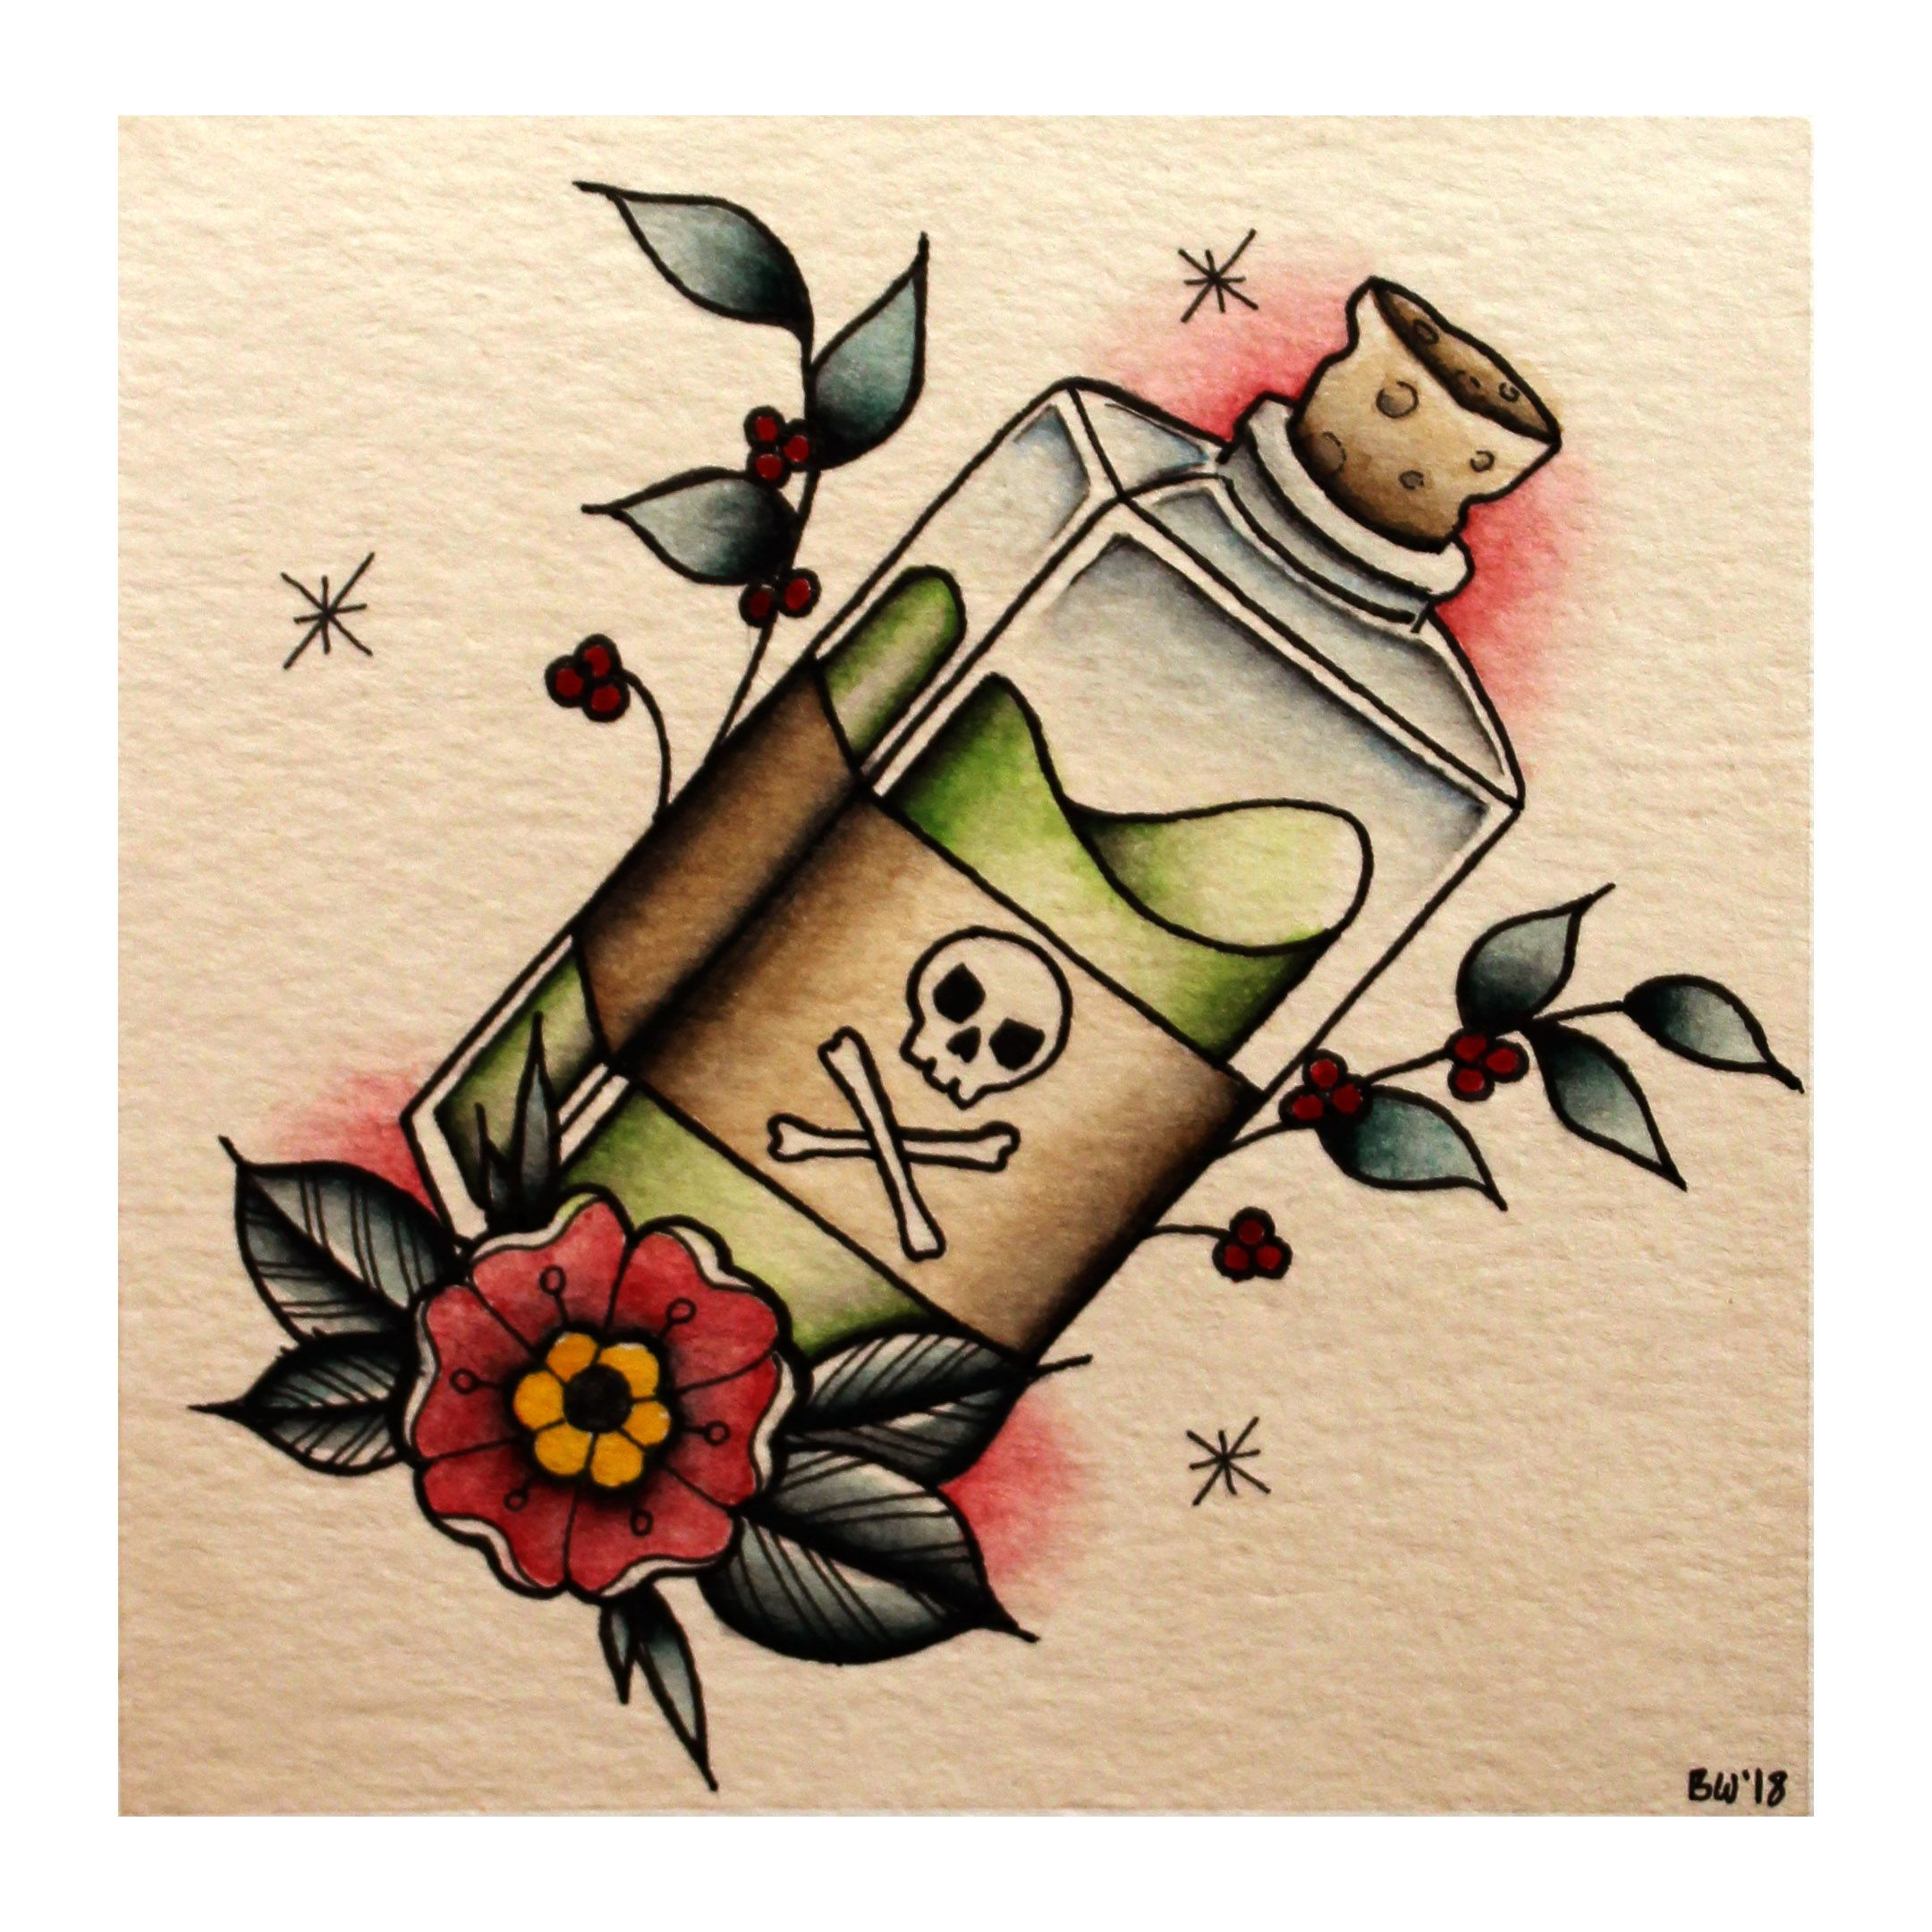 Small Bottle Tattoo: A Small Traditional Poison Bottle Tattoo Flash Design